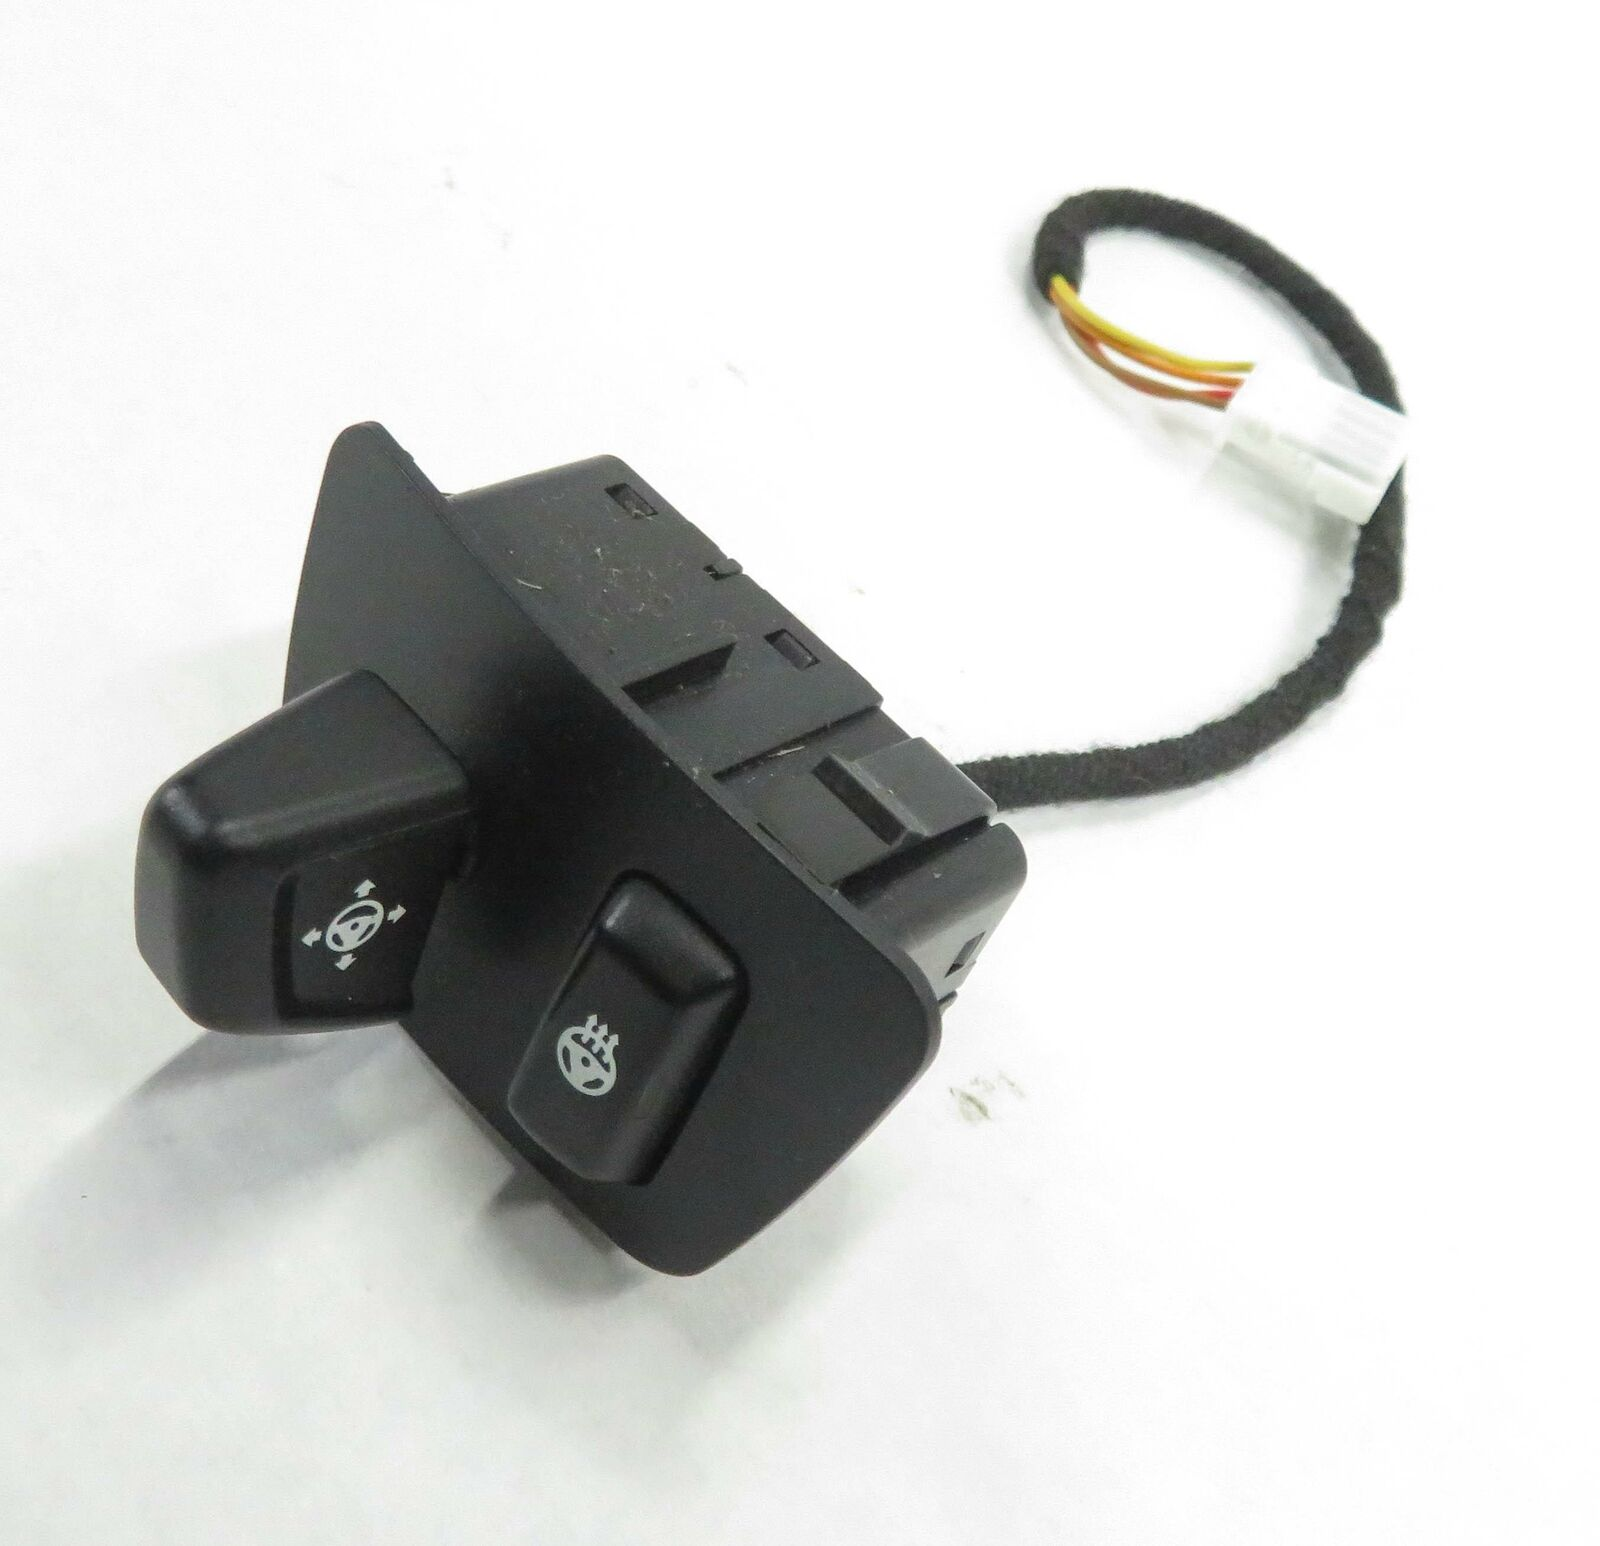 Suuonee Steering Column Switch Unit Steering Column Turn Signal Headlamp Switch Wiper Unit OE:4685711AA Fit for Chrysler Grand Voyager